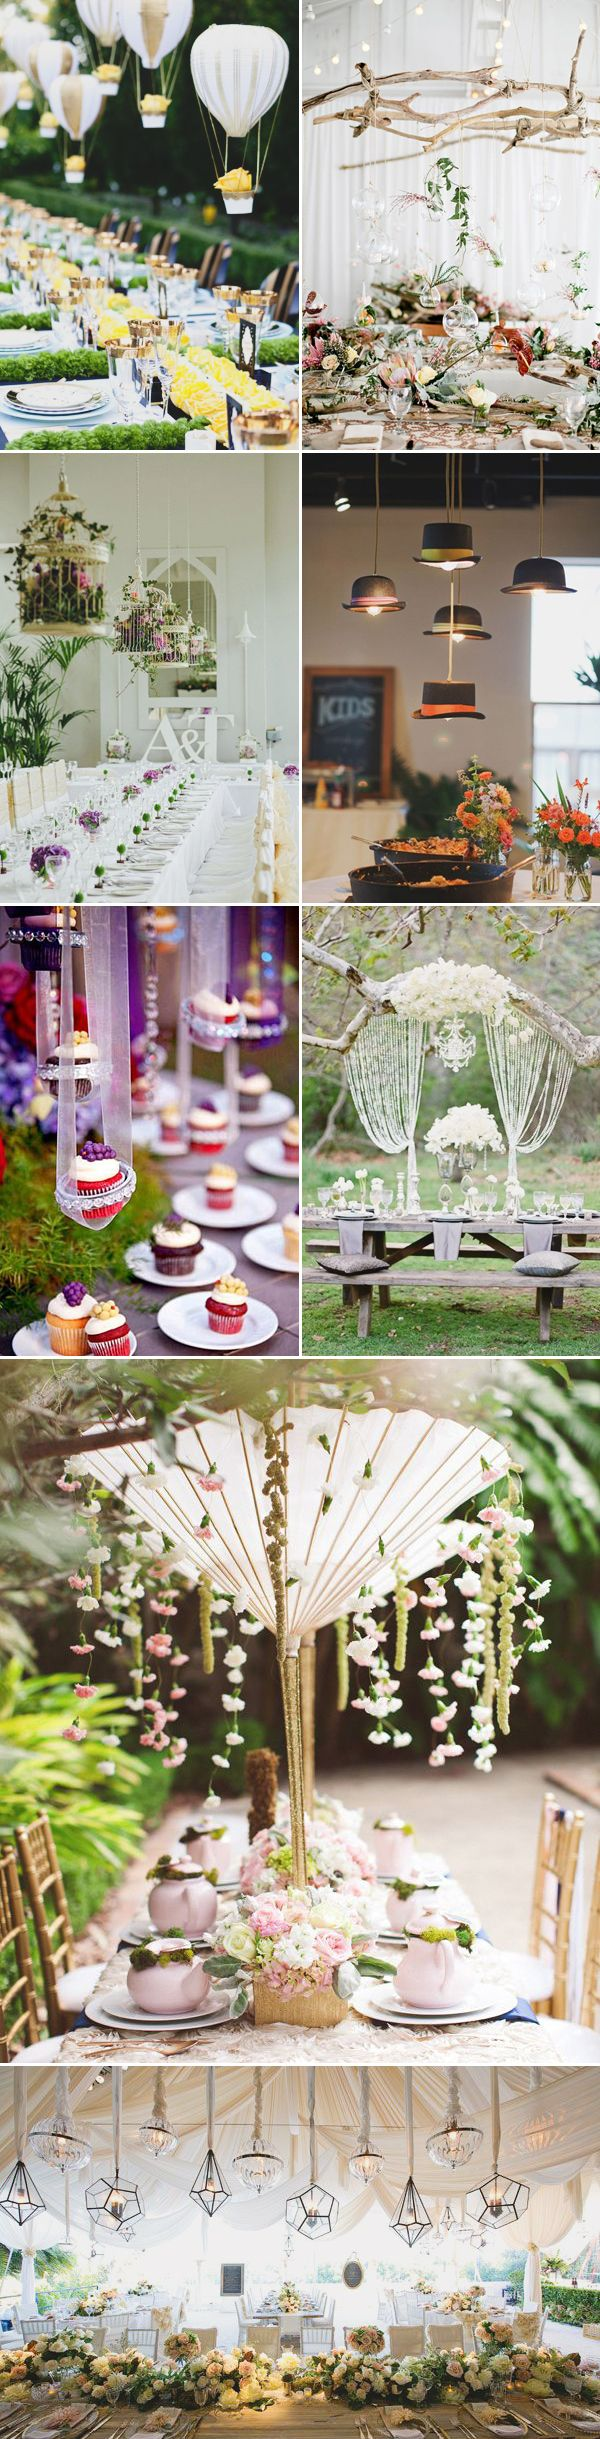 Rent ostrich feather centerpieces wedding amp party centerpiece rentals - Beauty From Above 27 Romantic Hanging Centerpiece Ideas